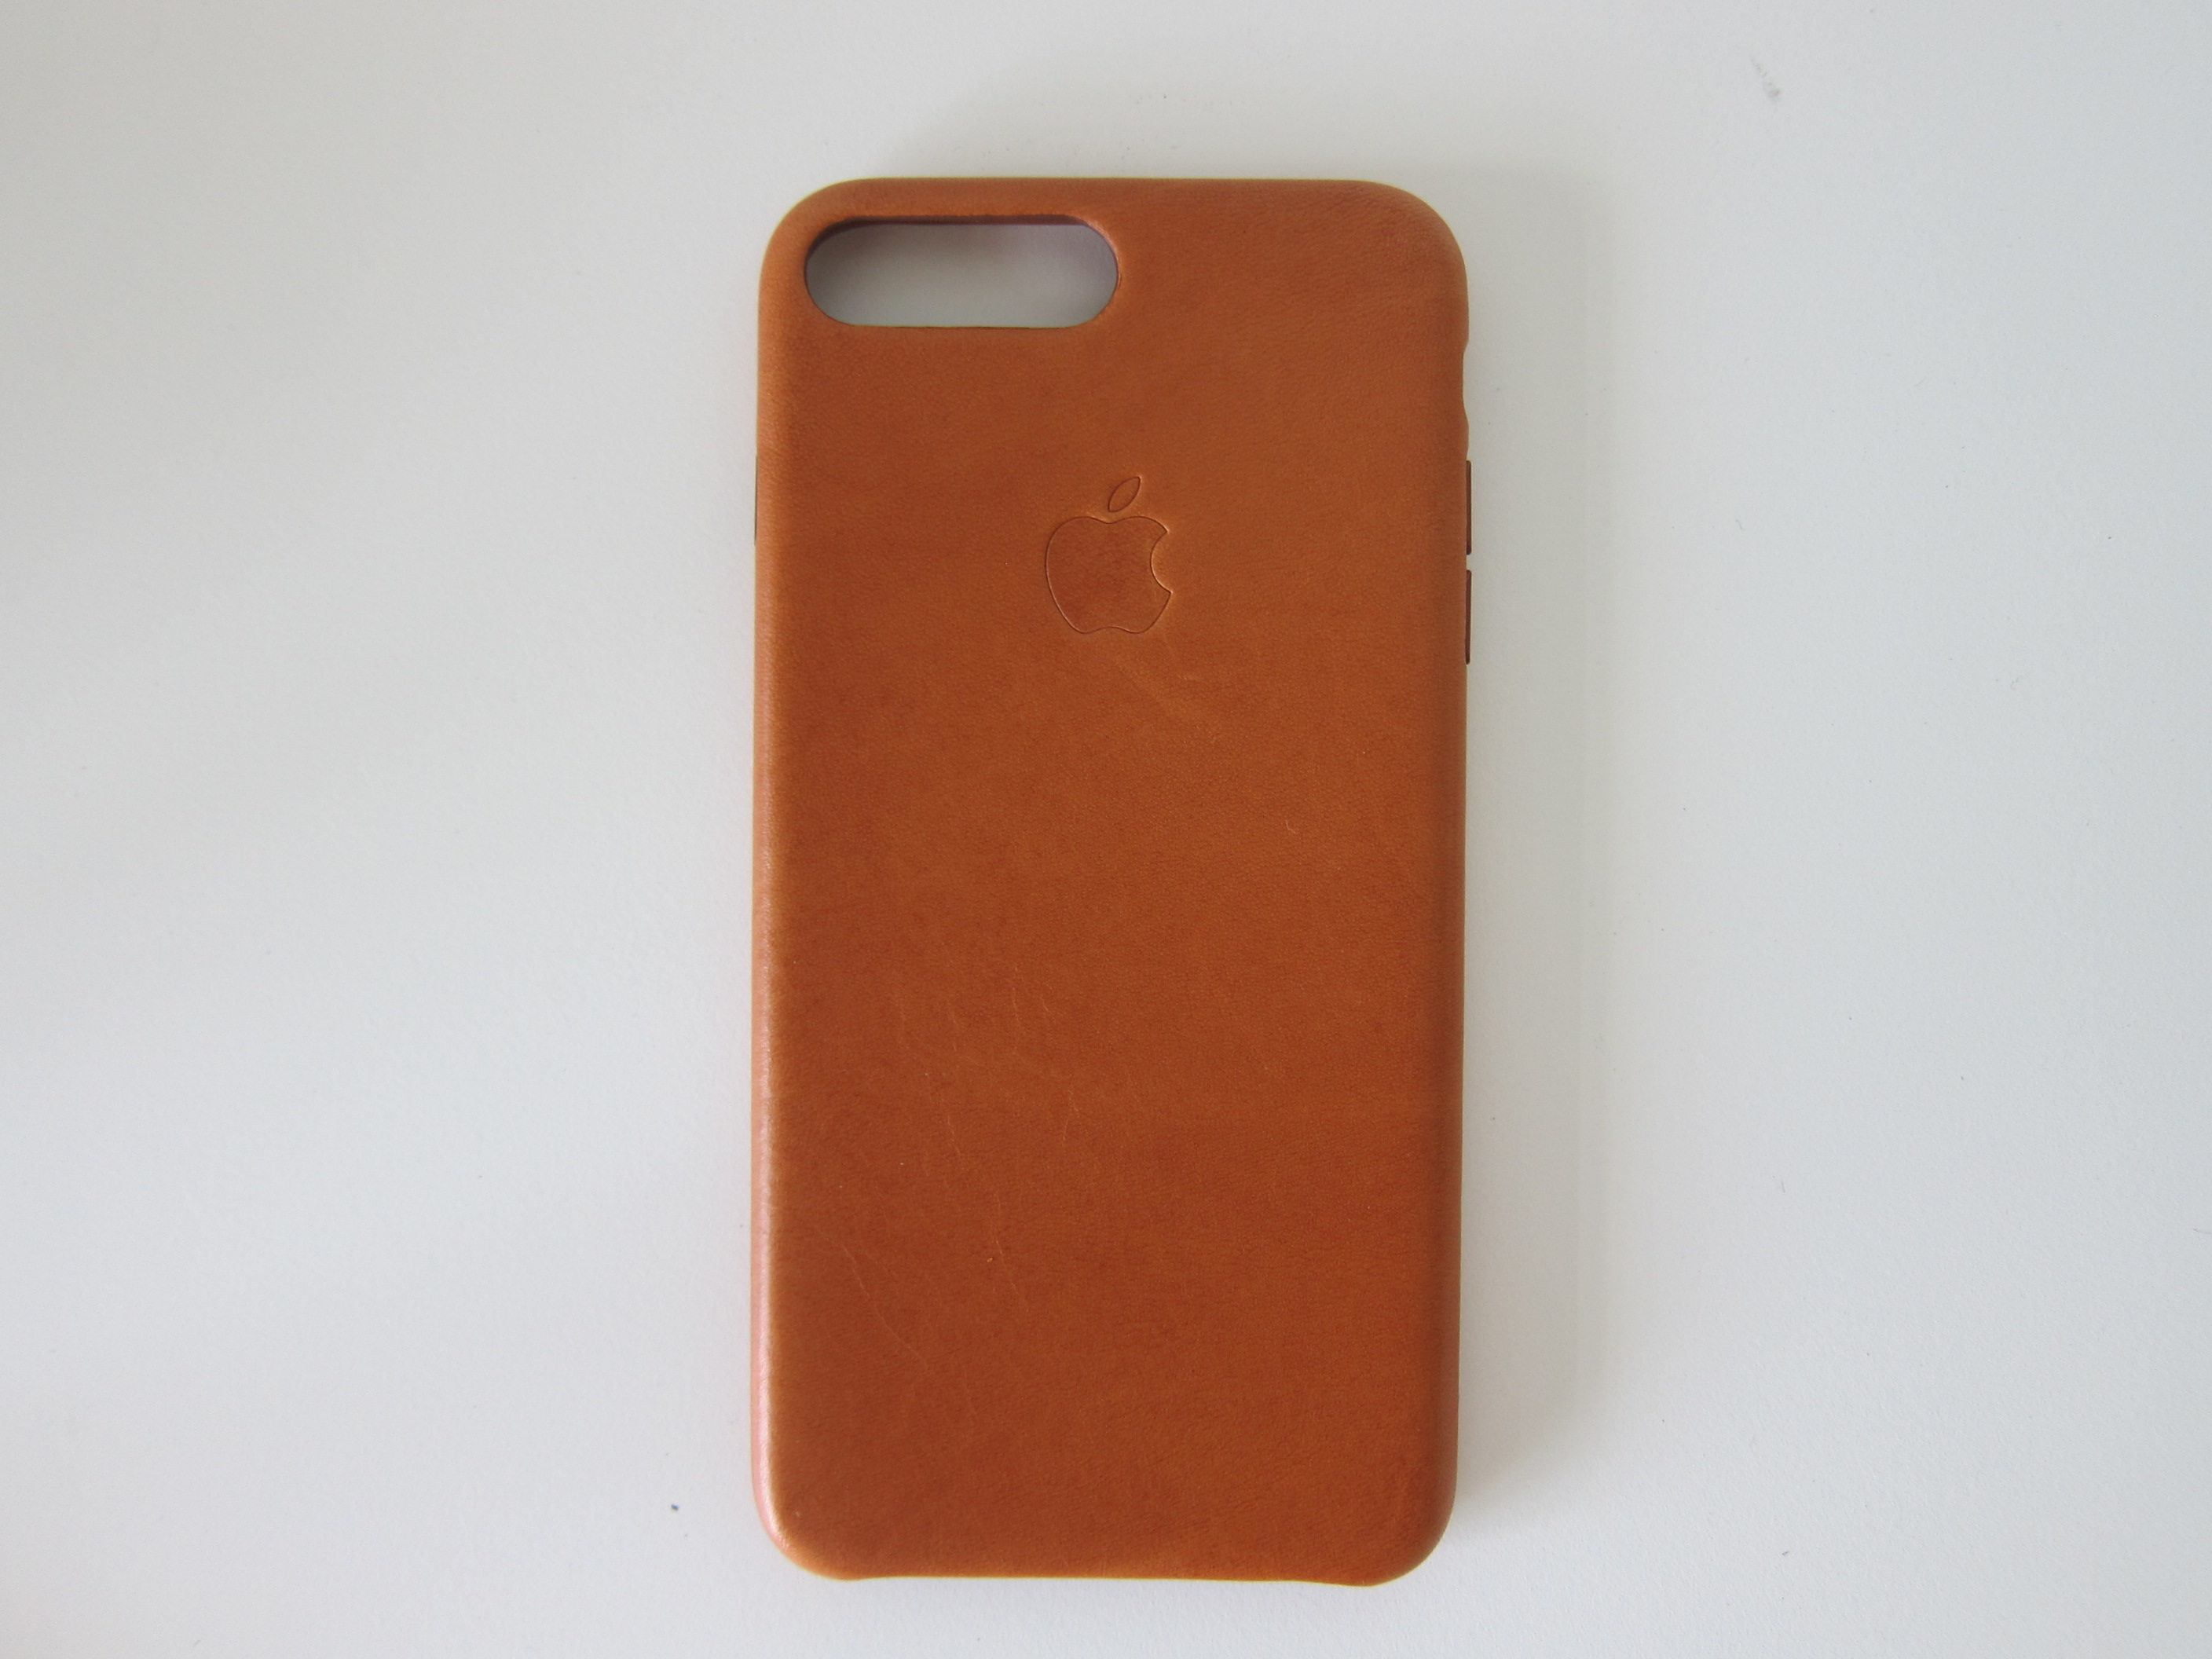 f08e53561471b Apple iPhone 7 Plus Leather Case (Saddle Brown) - Back